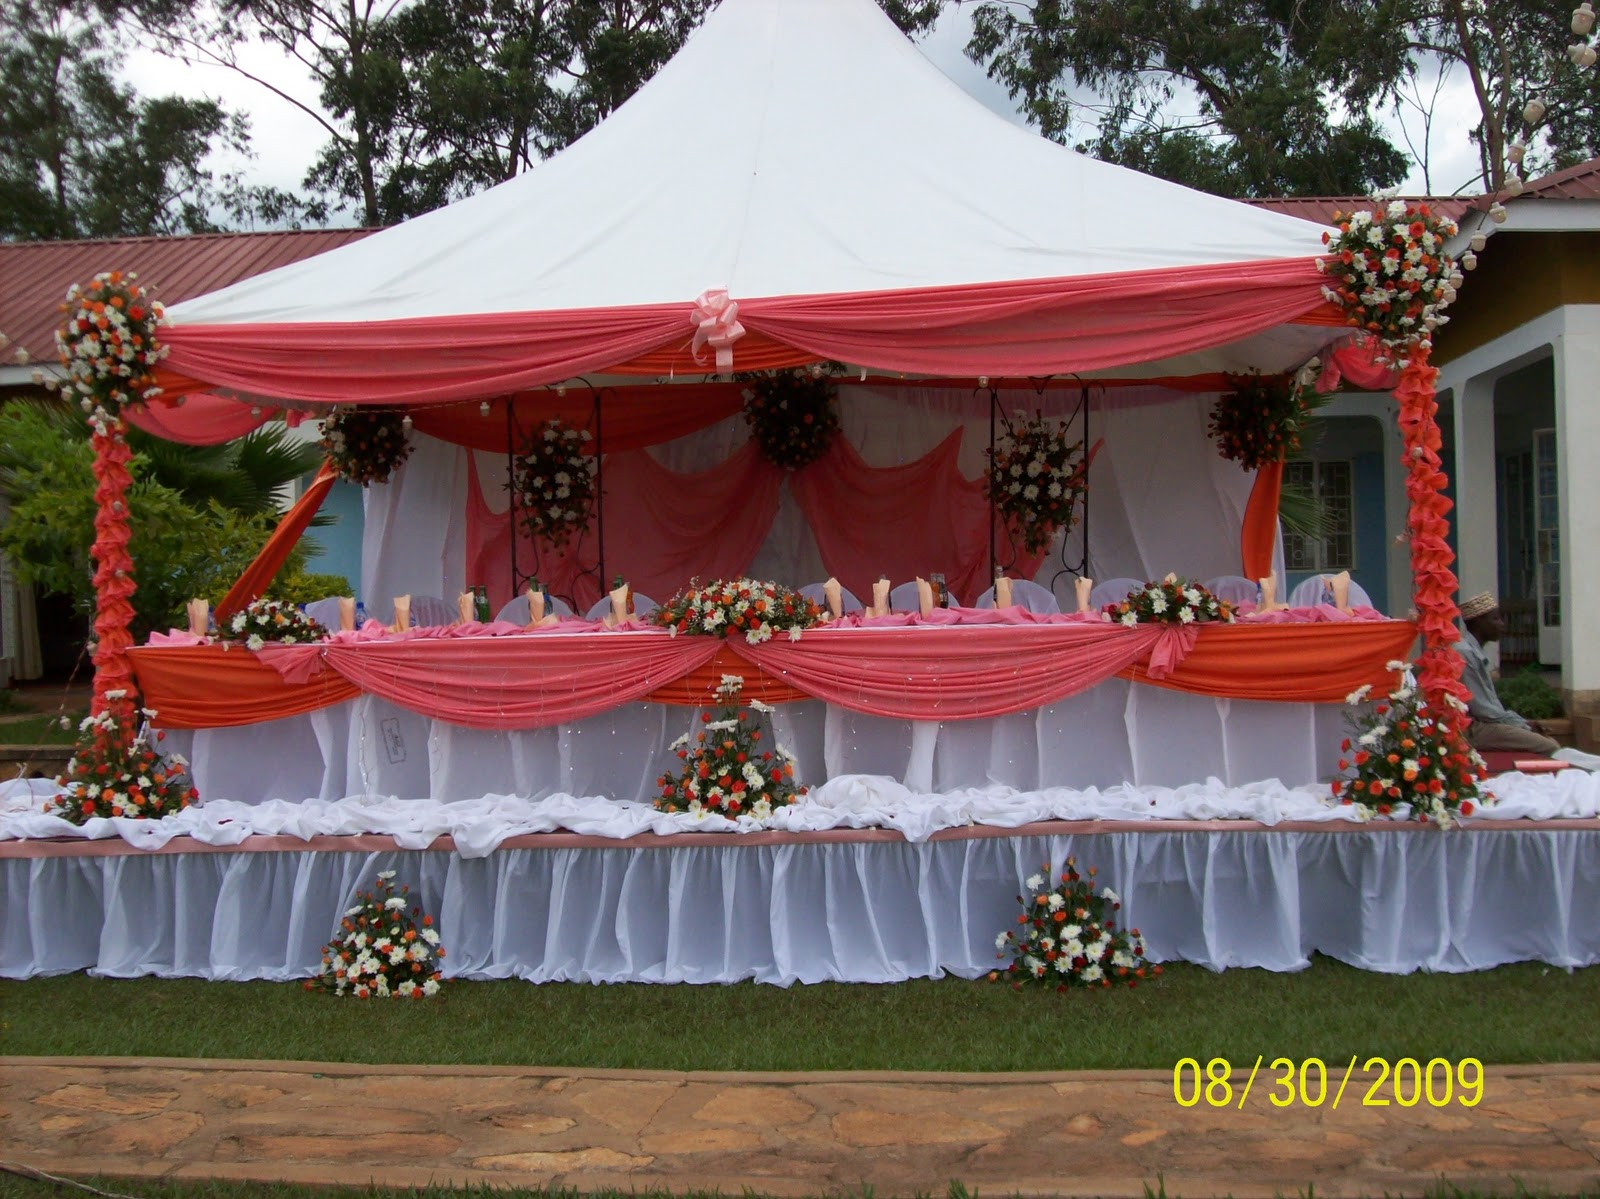 Wedding and party decorations pictures king of uganda for Decoration pictures